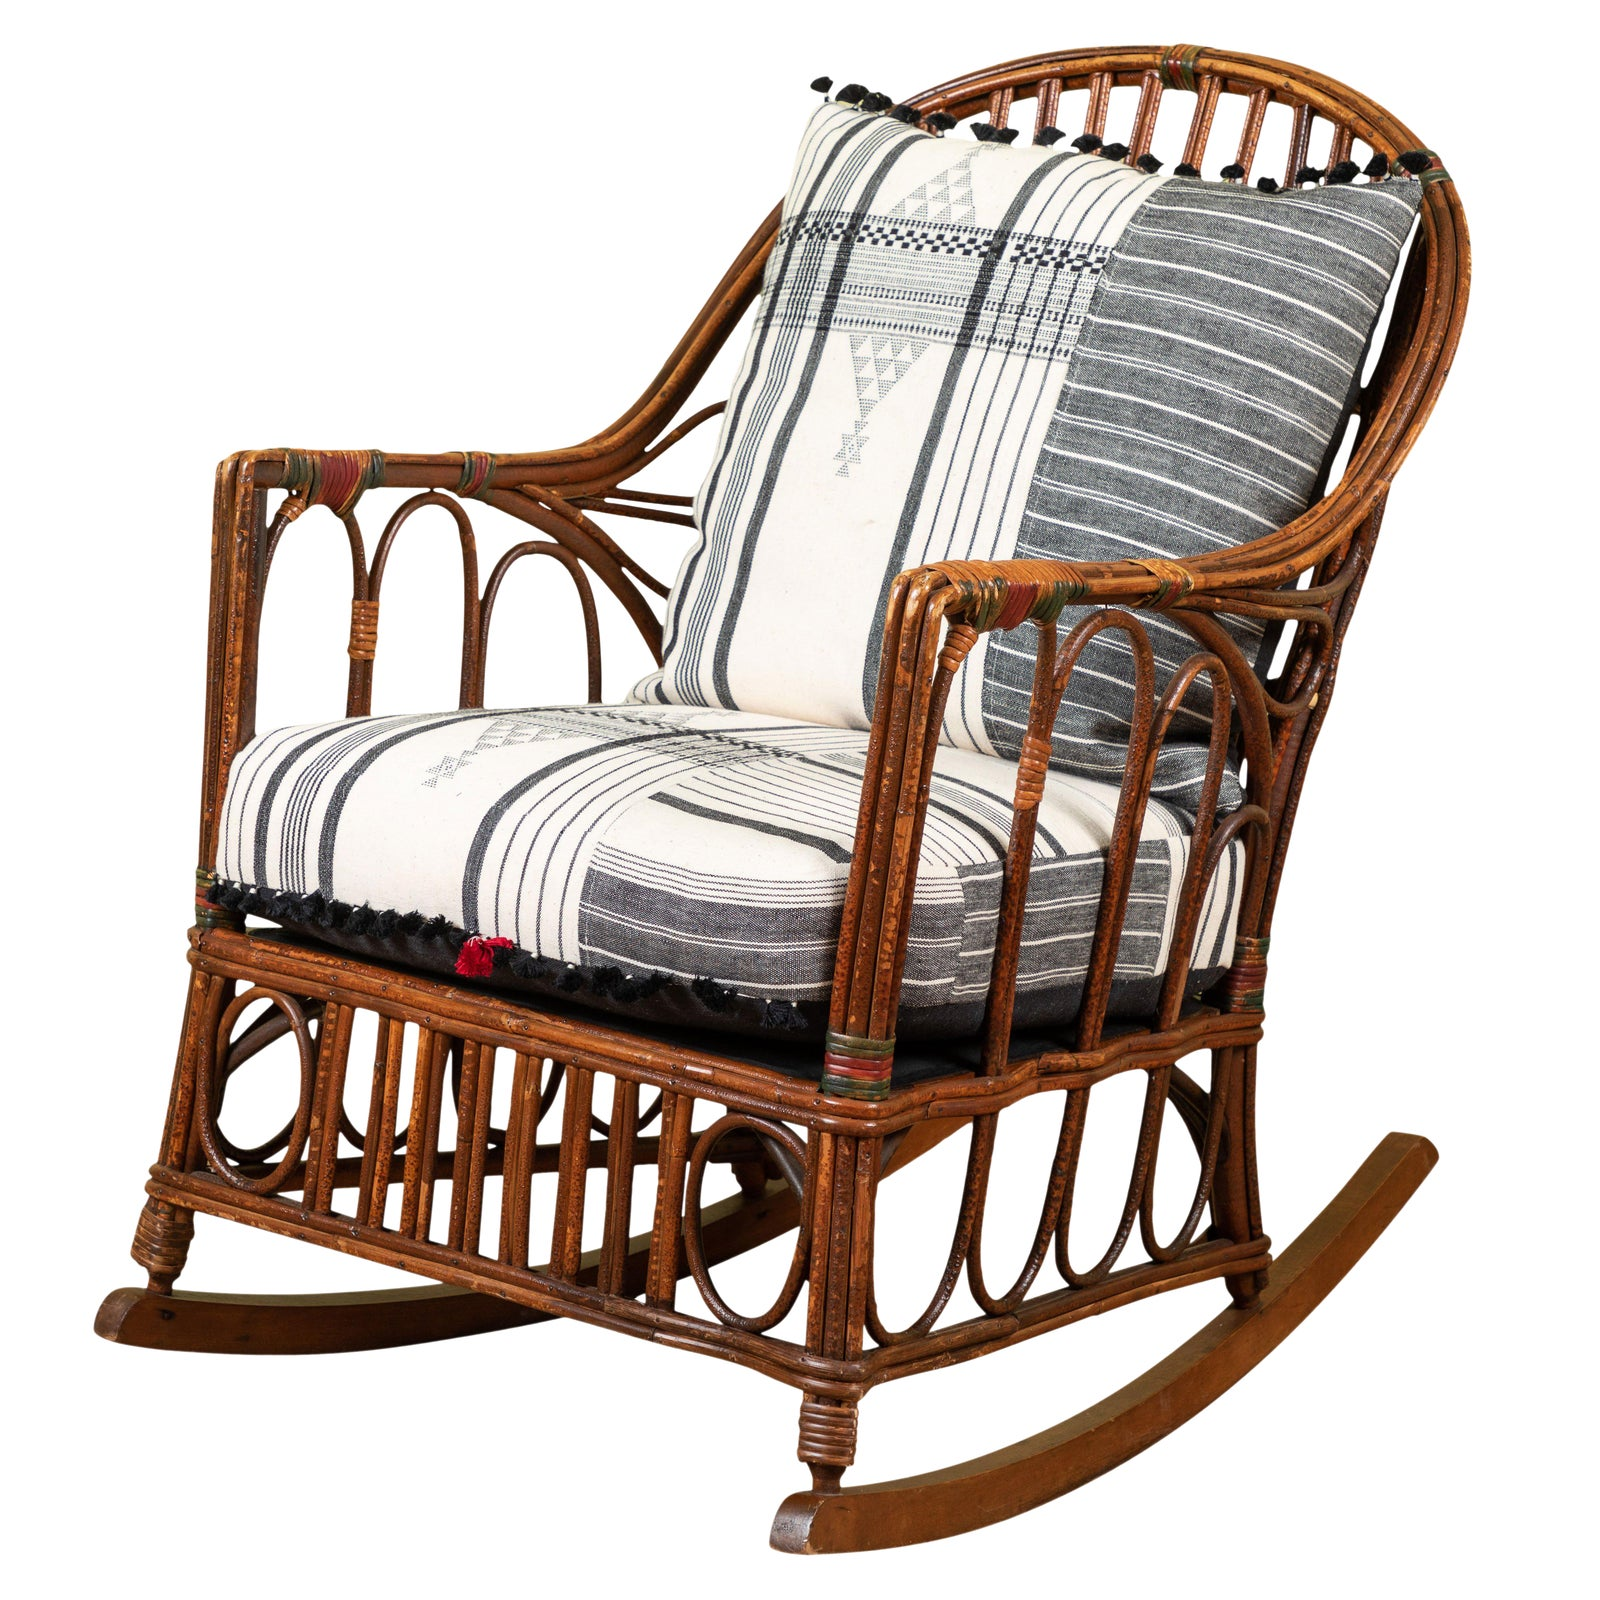 Phenomenal 1920S Bent Wood Rocking Chair With Injiri Upholstery Dailytribune Chair Design For Home Dailytribuneorg